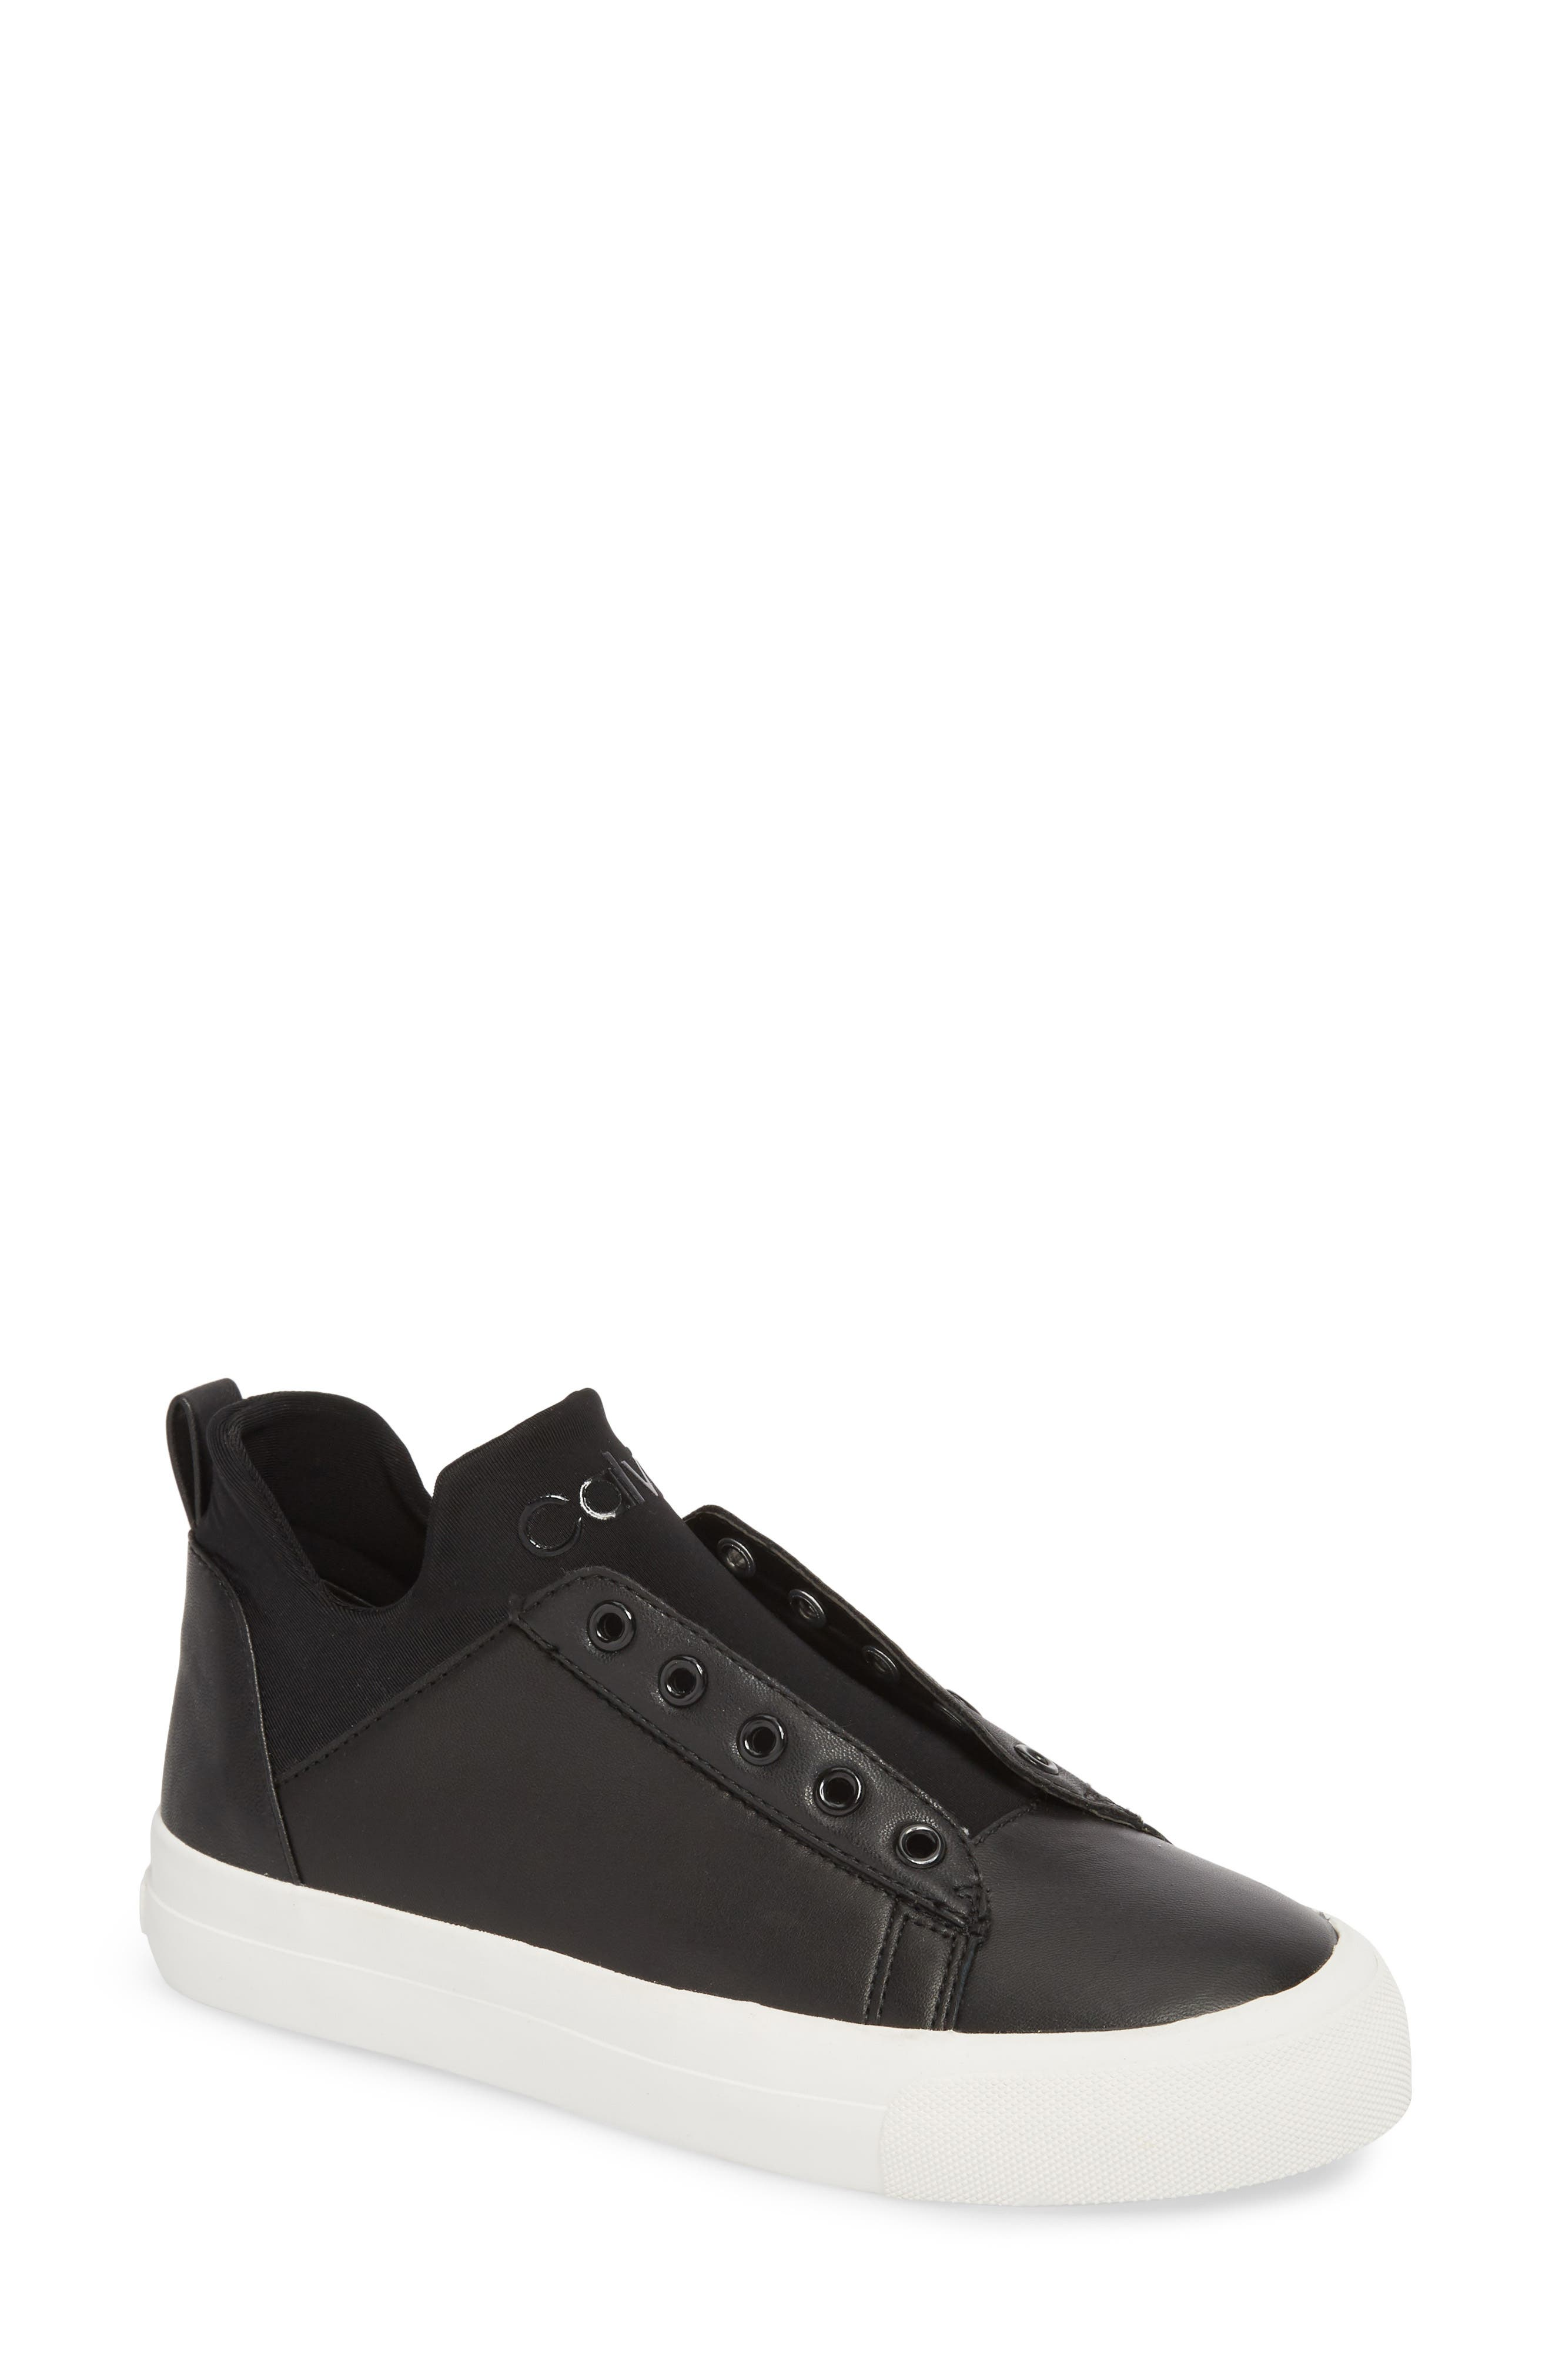 Valorie Mid Top Sneaker,                         Main,                         color, Black Leather